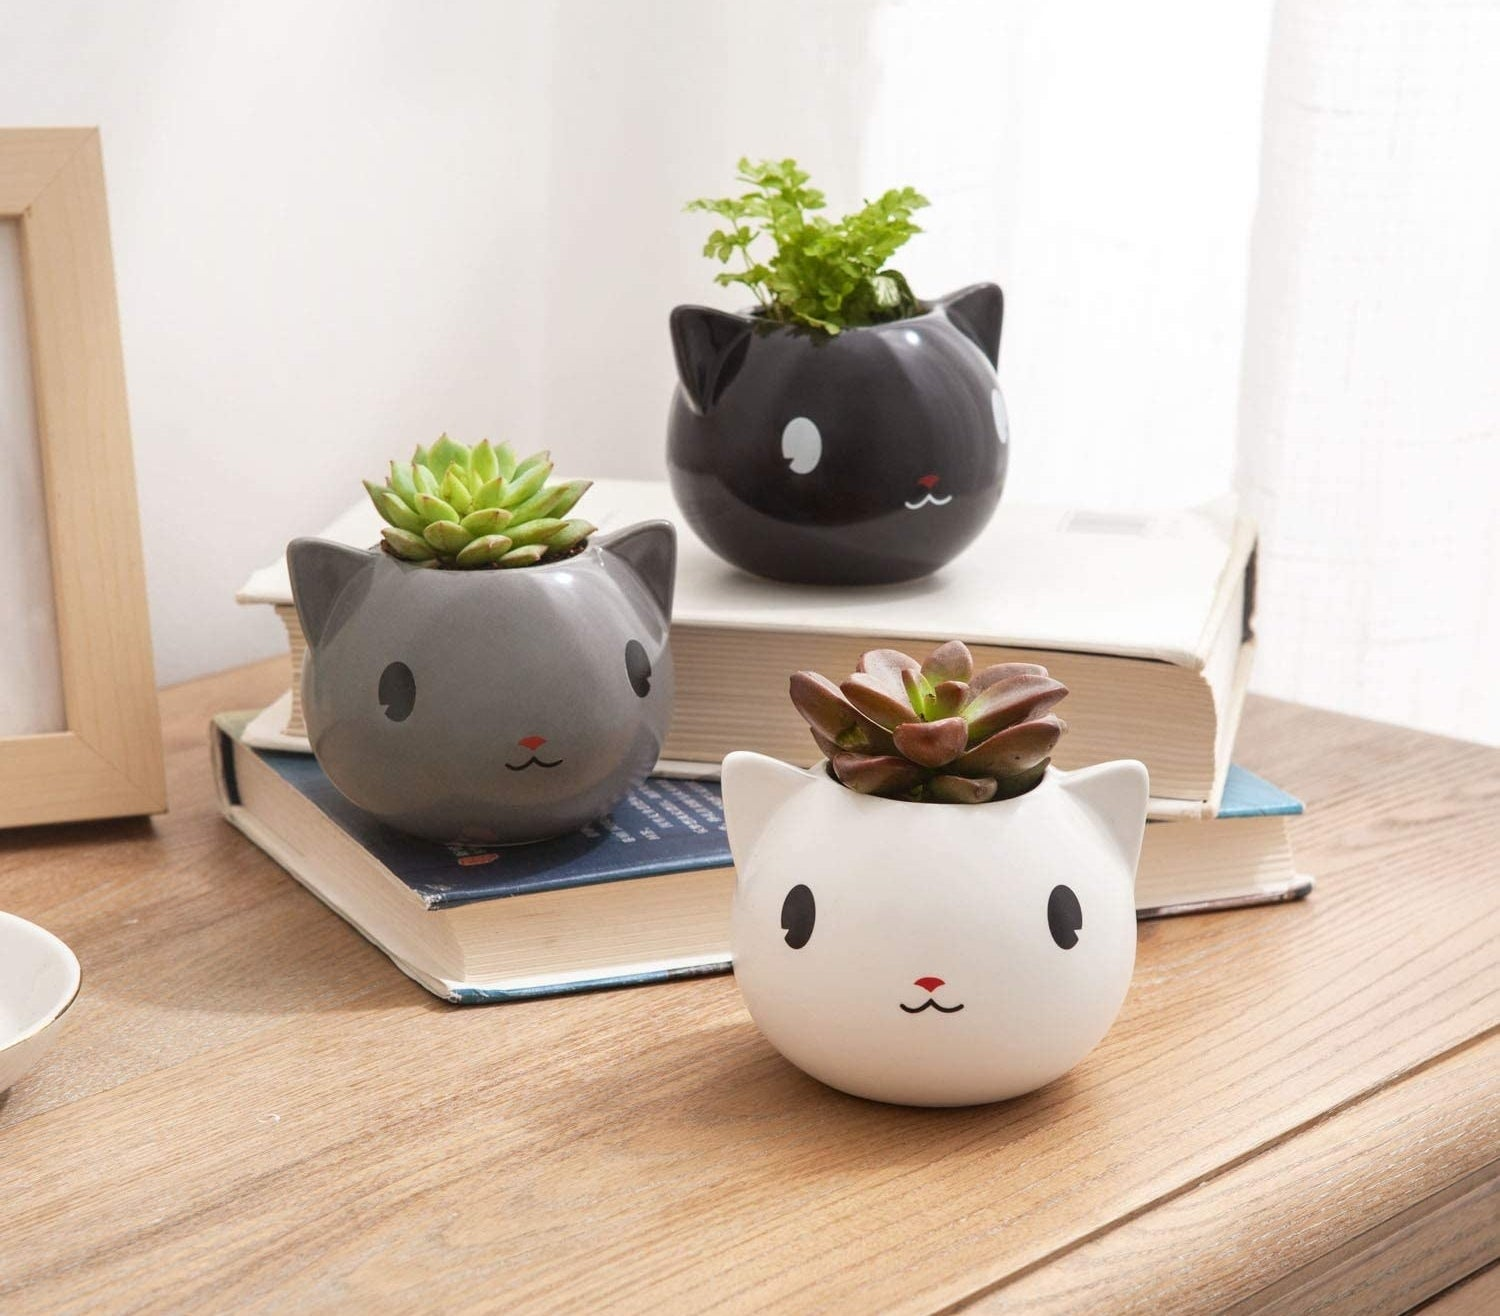 The round, slightly larger than palm size planters in black, gray, and white each holding a small plant. They've got protruding ears and faces drawn on them